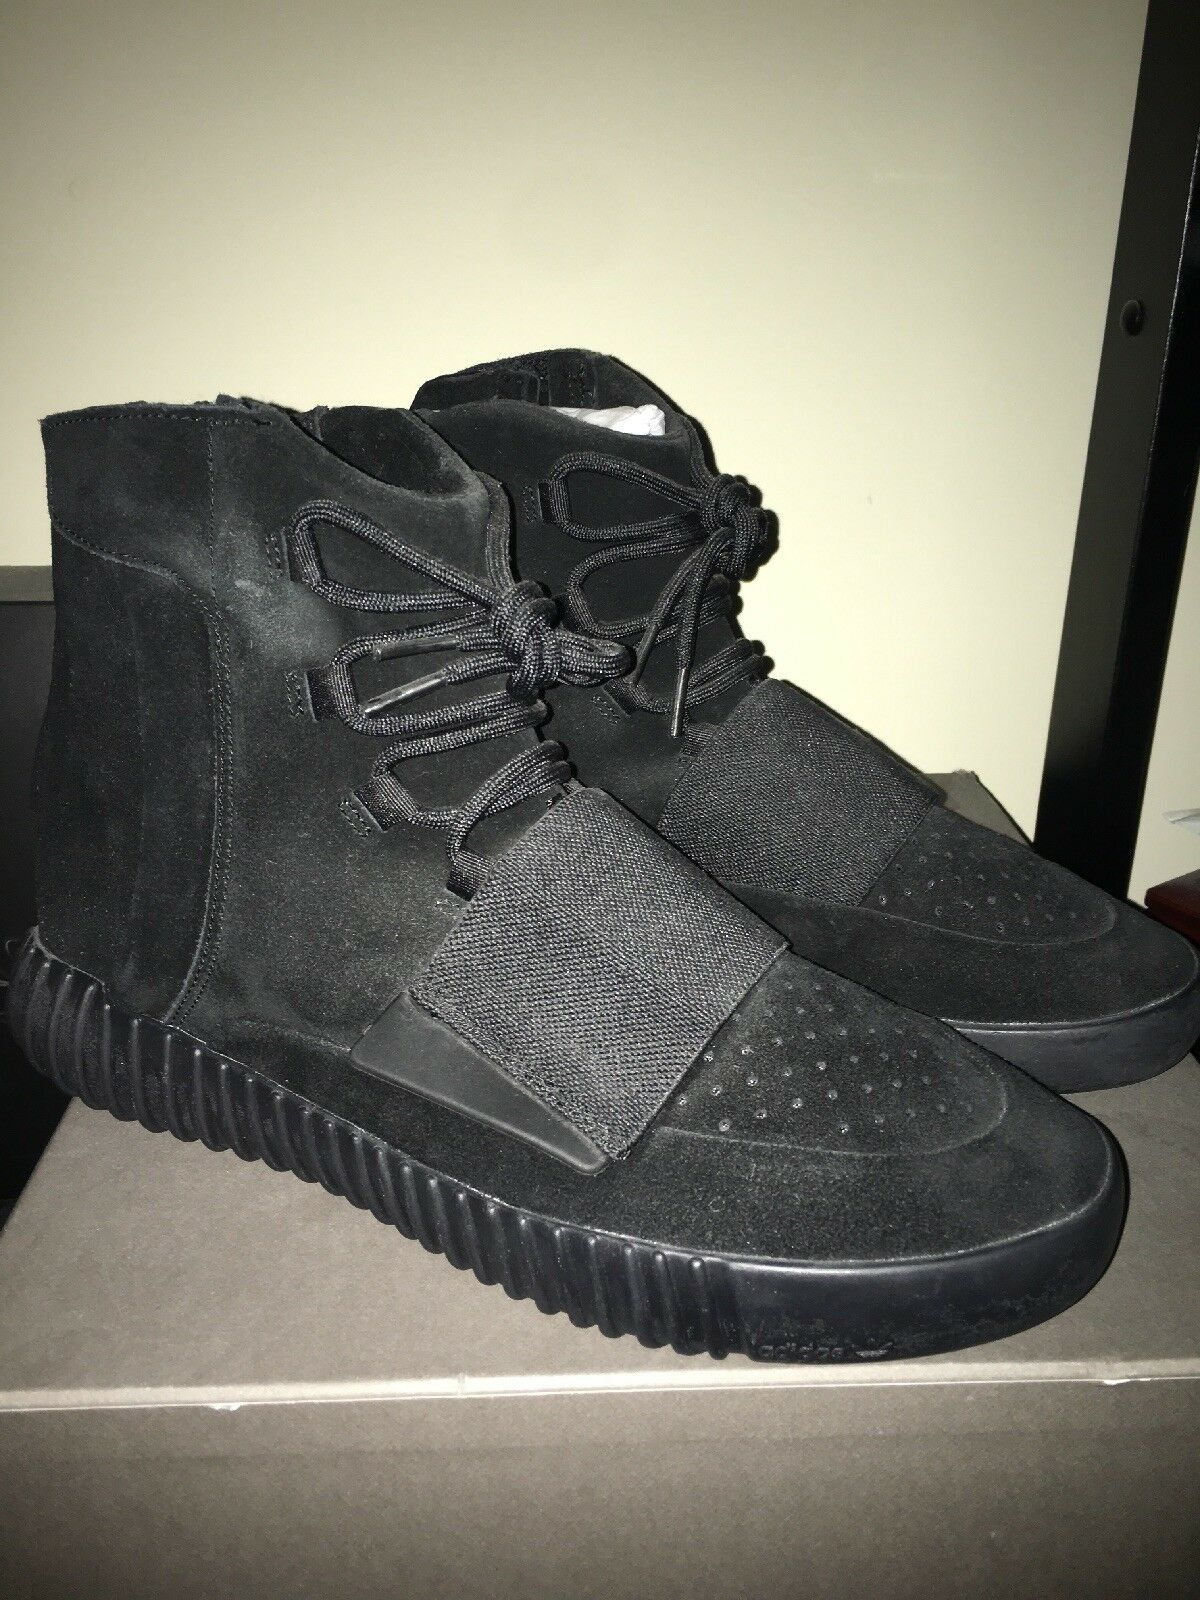 Adidas Yeezy Boost 750 Triple Black Sz 11 100% Authentic Brand New